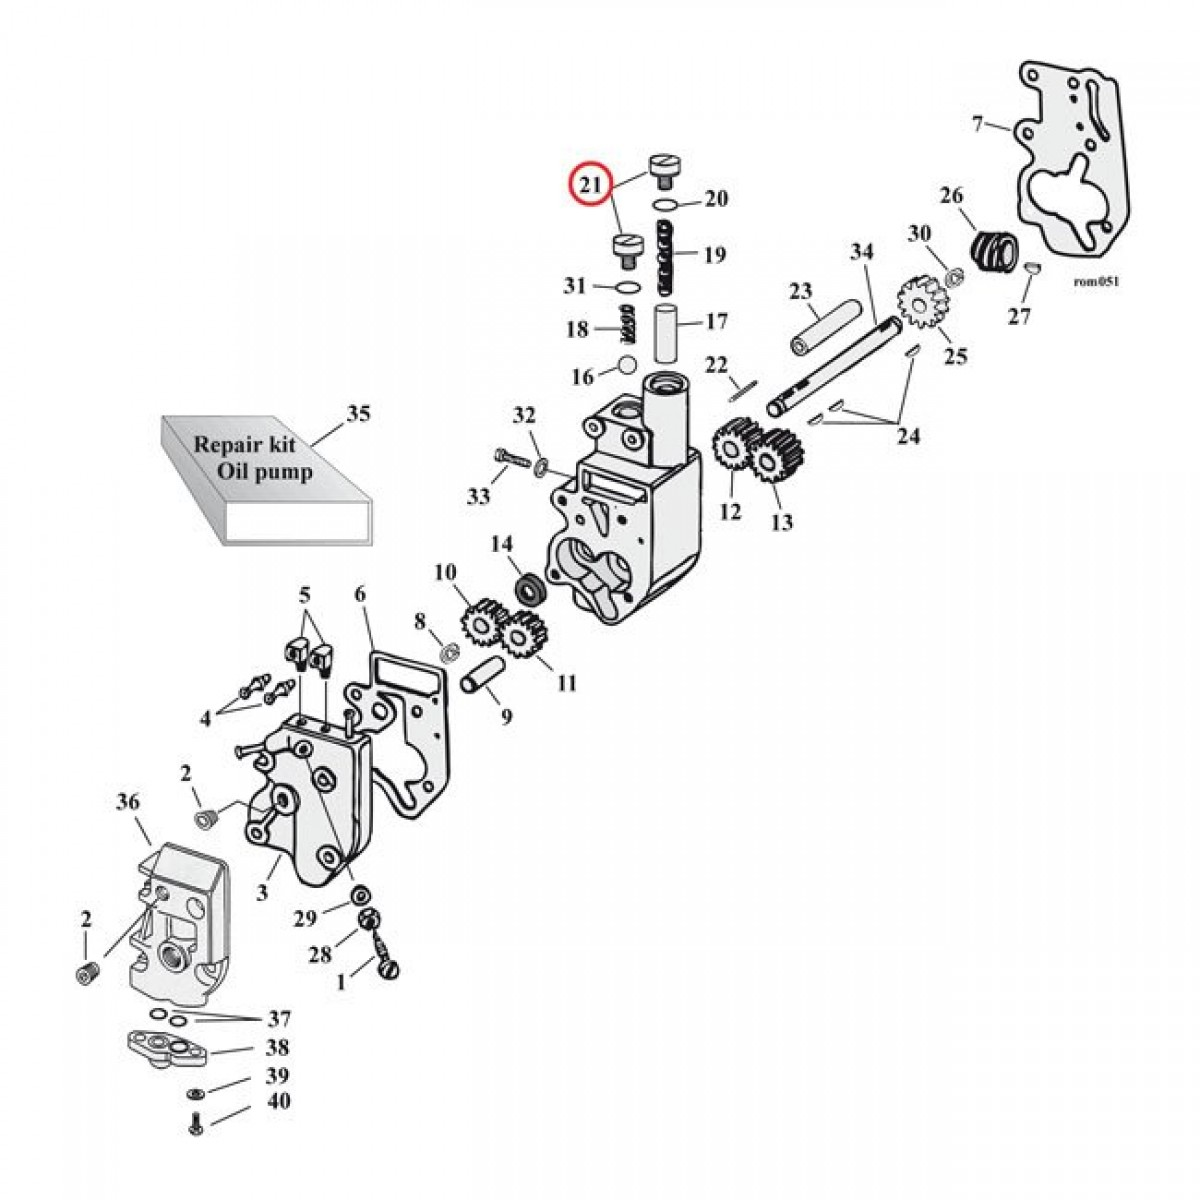 Tt Harley Davidson Oil Pump Diagram Wiring Diagram